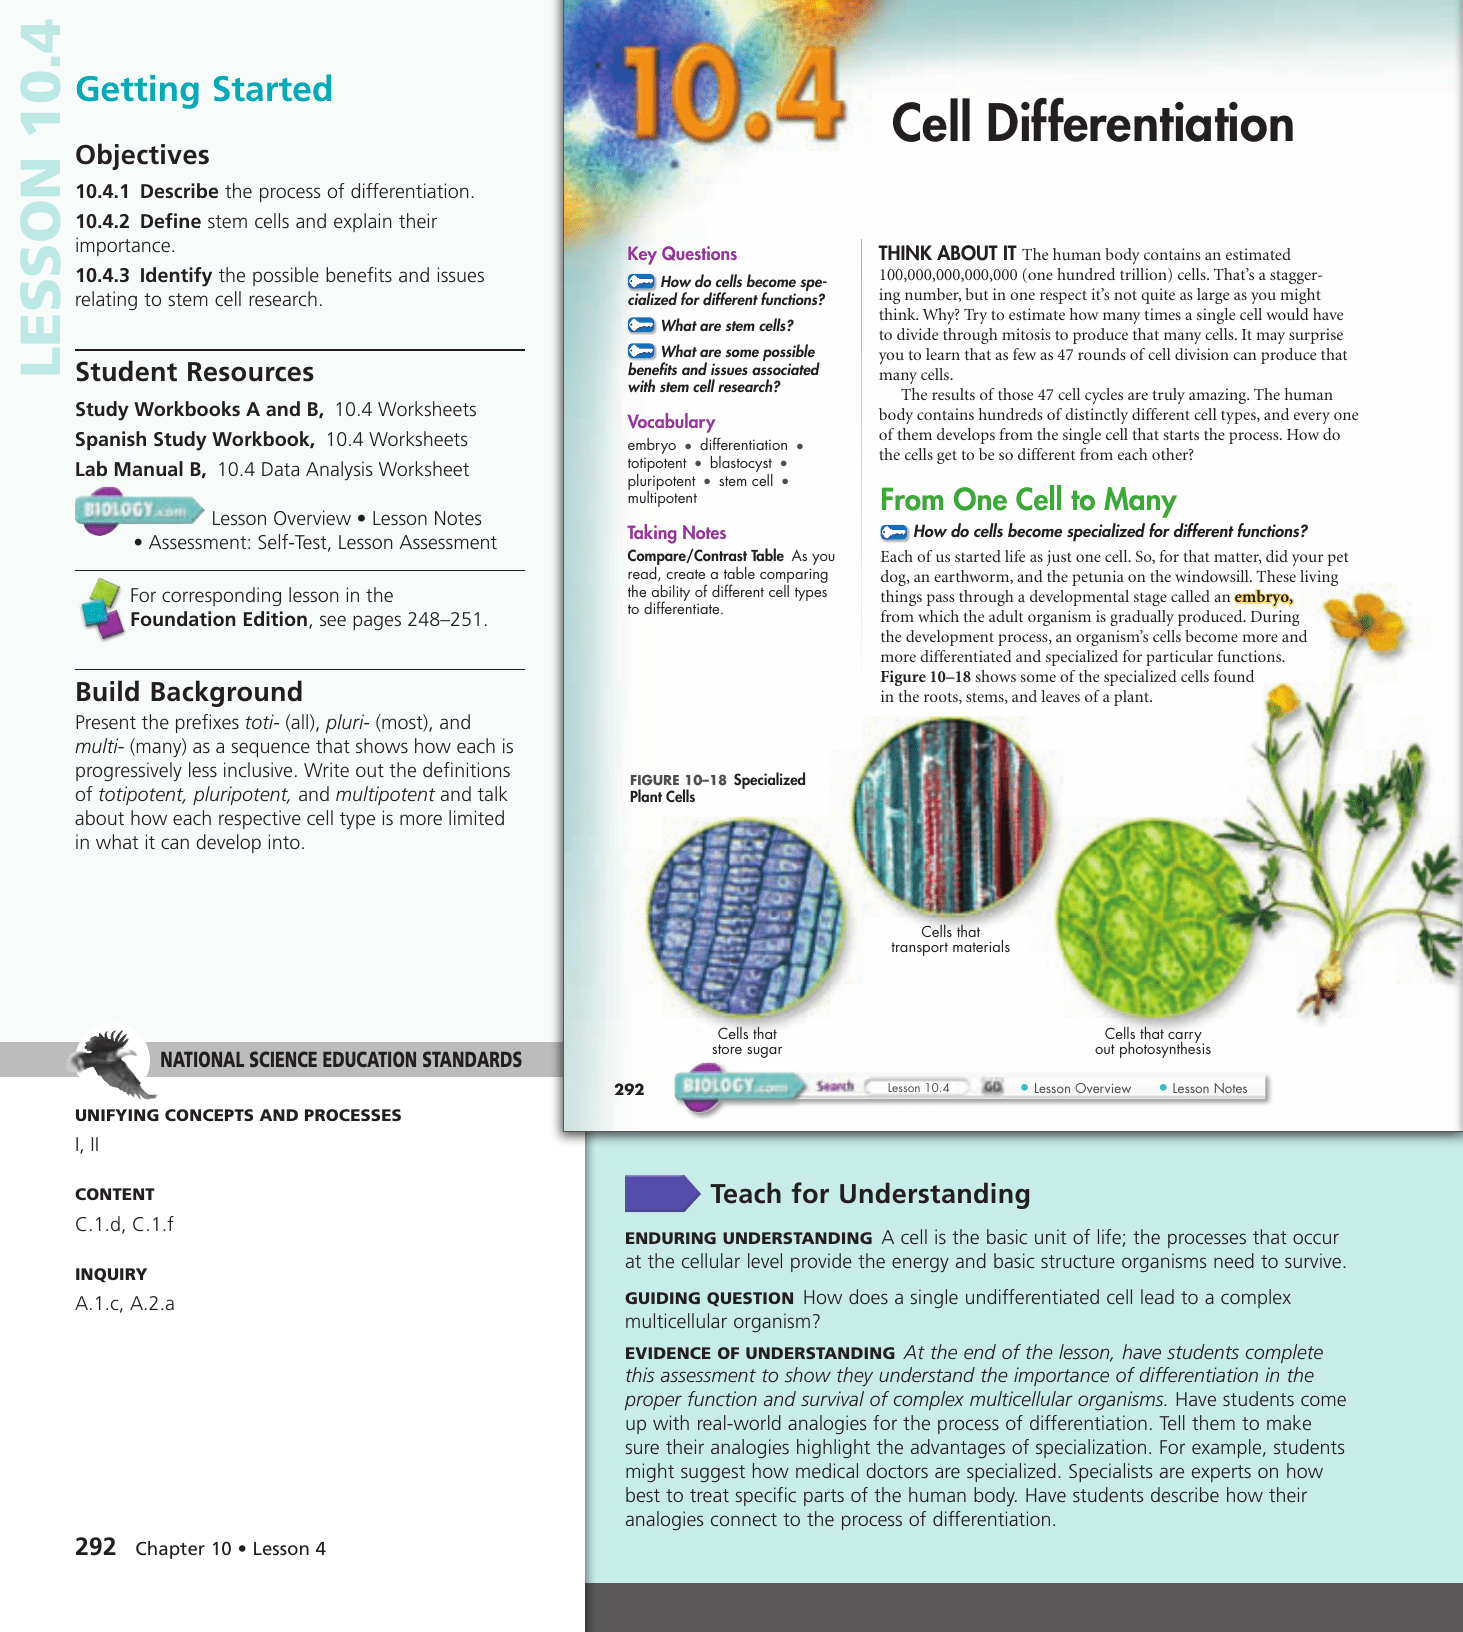 104 Cell Differentiation Worksheet Answer Key